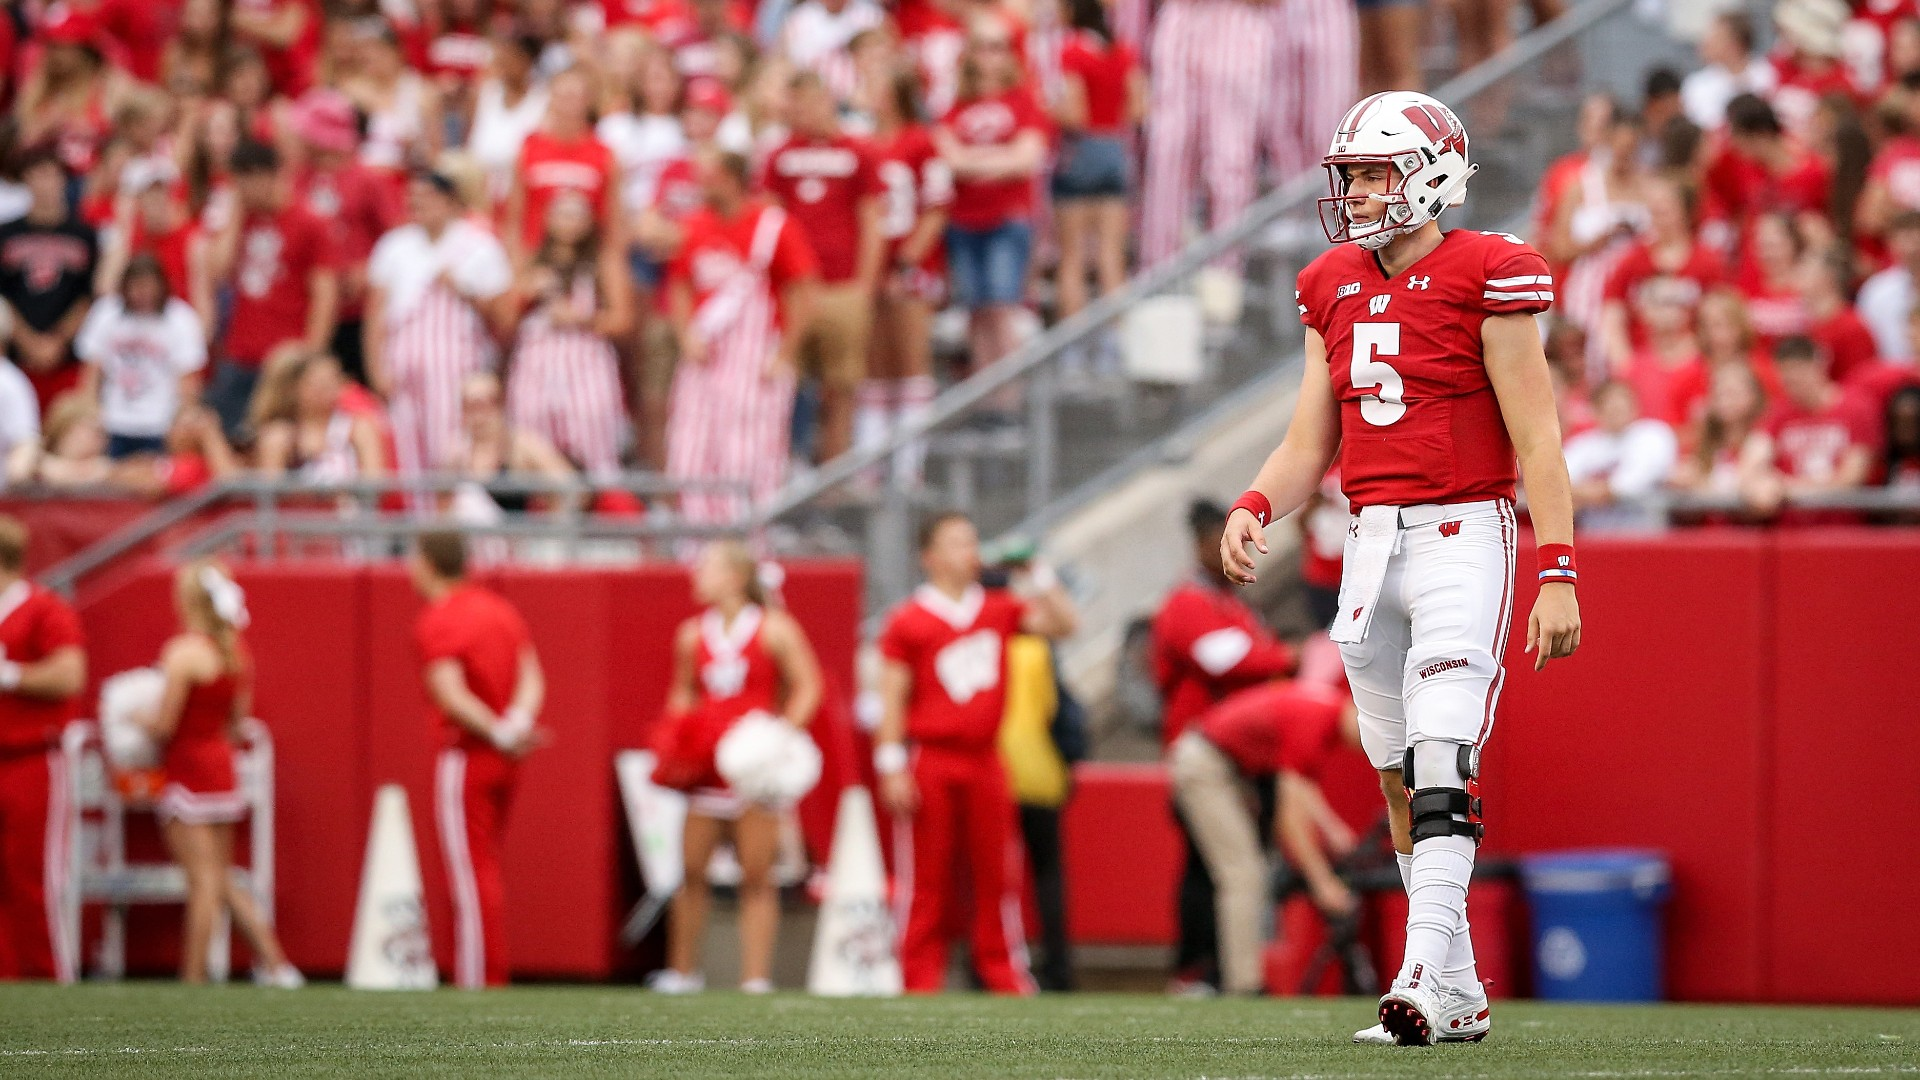 College Football Odds & Picks for Wisconsin vs. Northwestern: Betting Value Lies With Badgers Over Wildcats article feature image